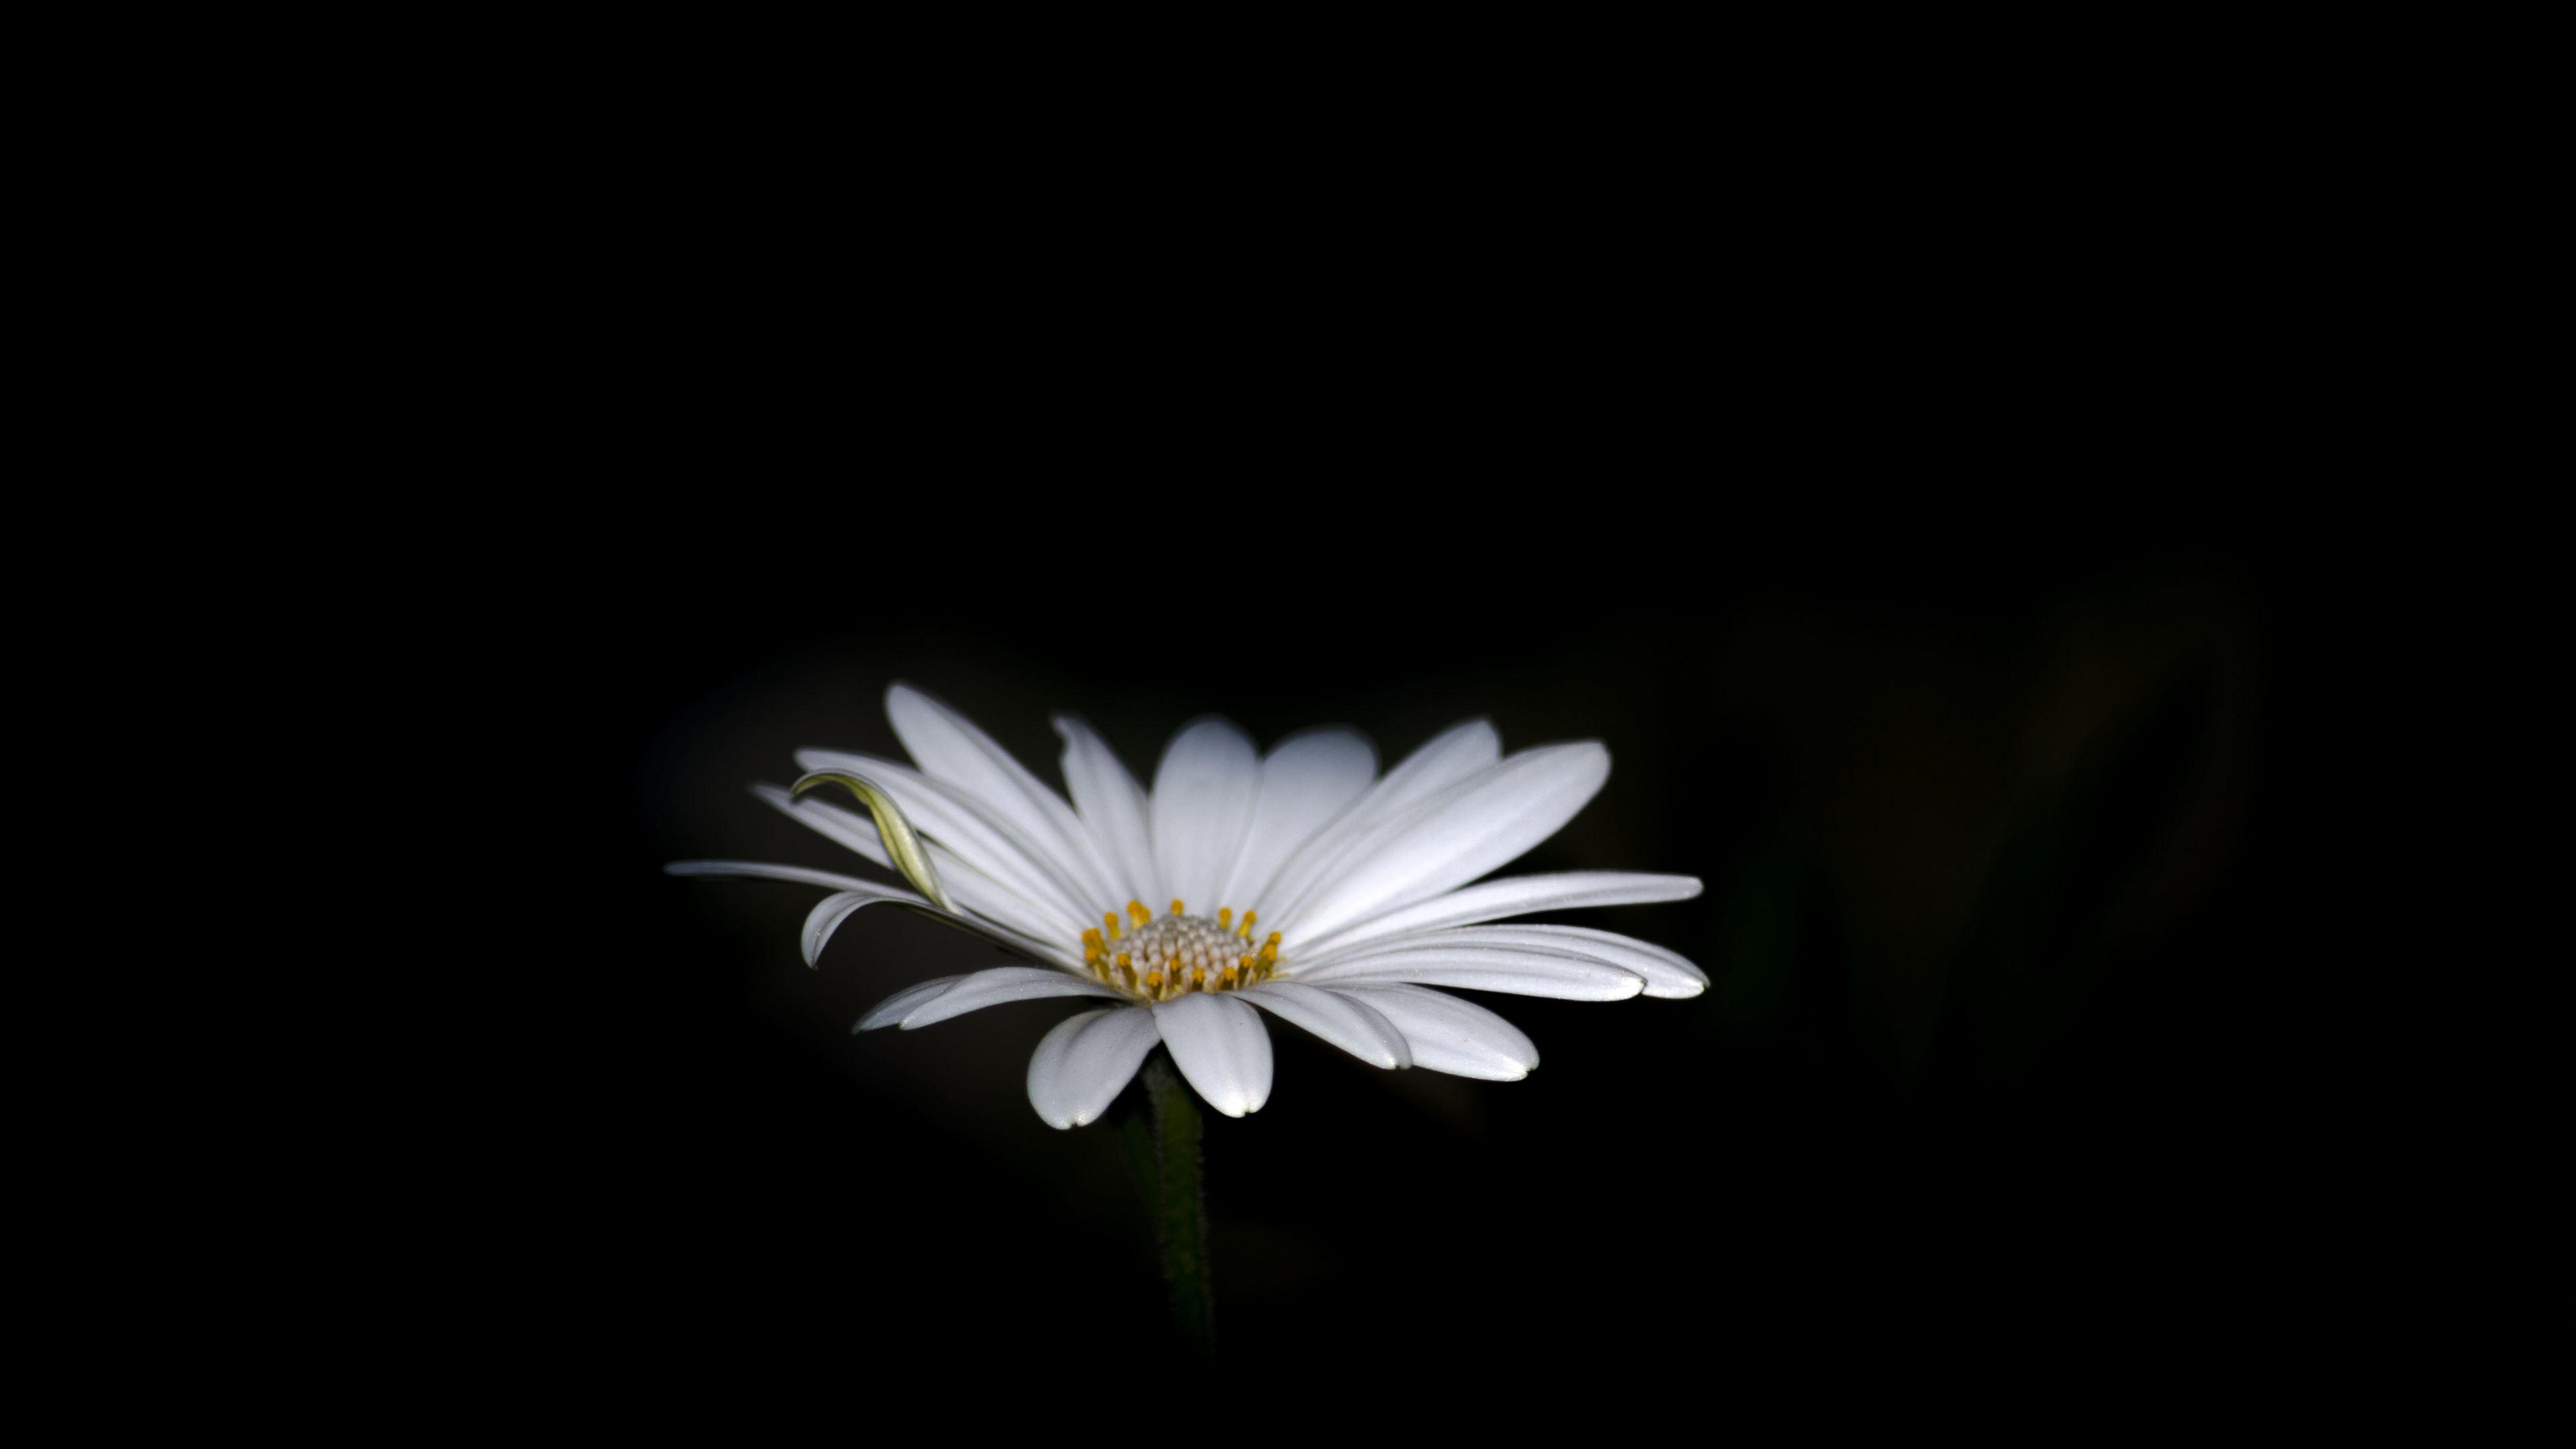 flower, petal, freshness, fragility, white color, flower head, beauty in nature, black background, growth, studio shot, copy space, close-up, nature, blooming, white, single flower, plant, stem, focus on foreground, pollen